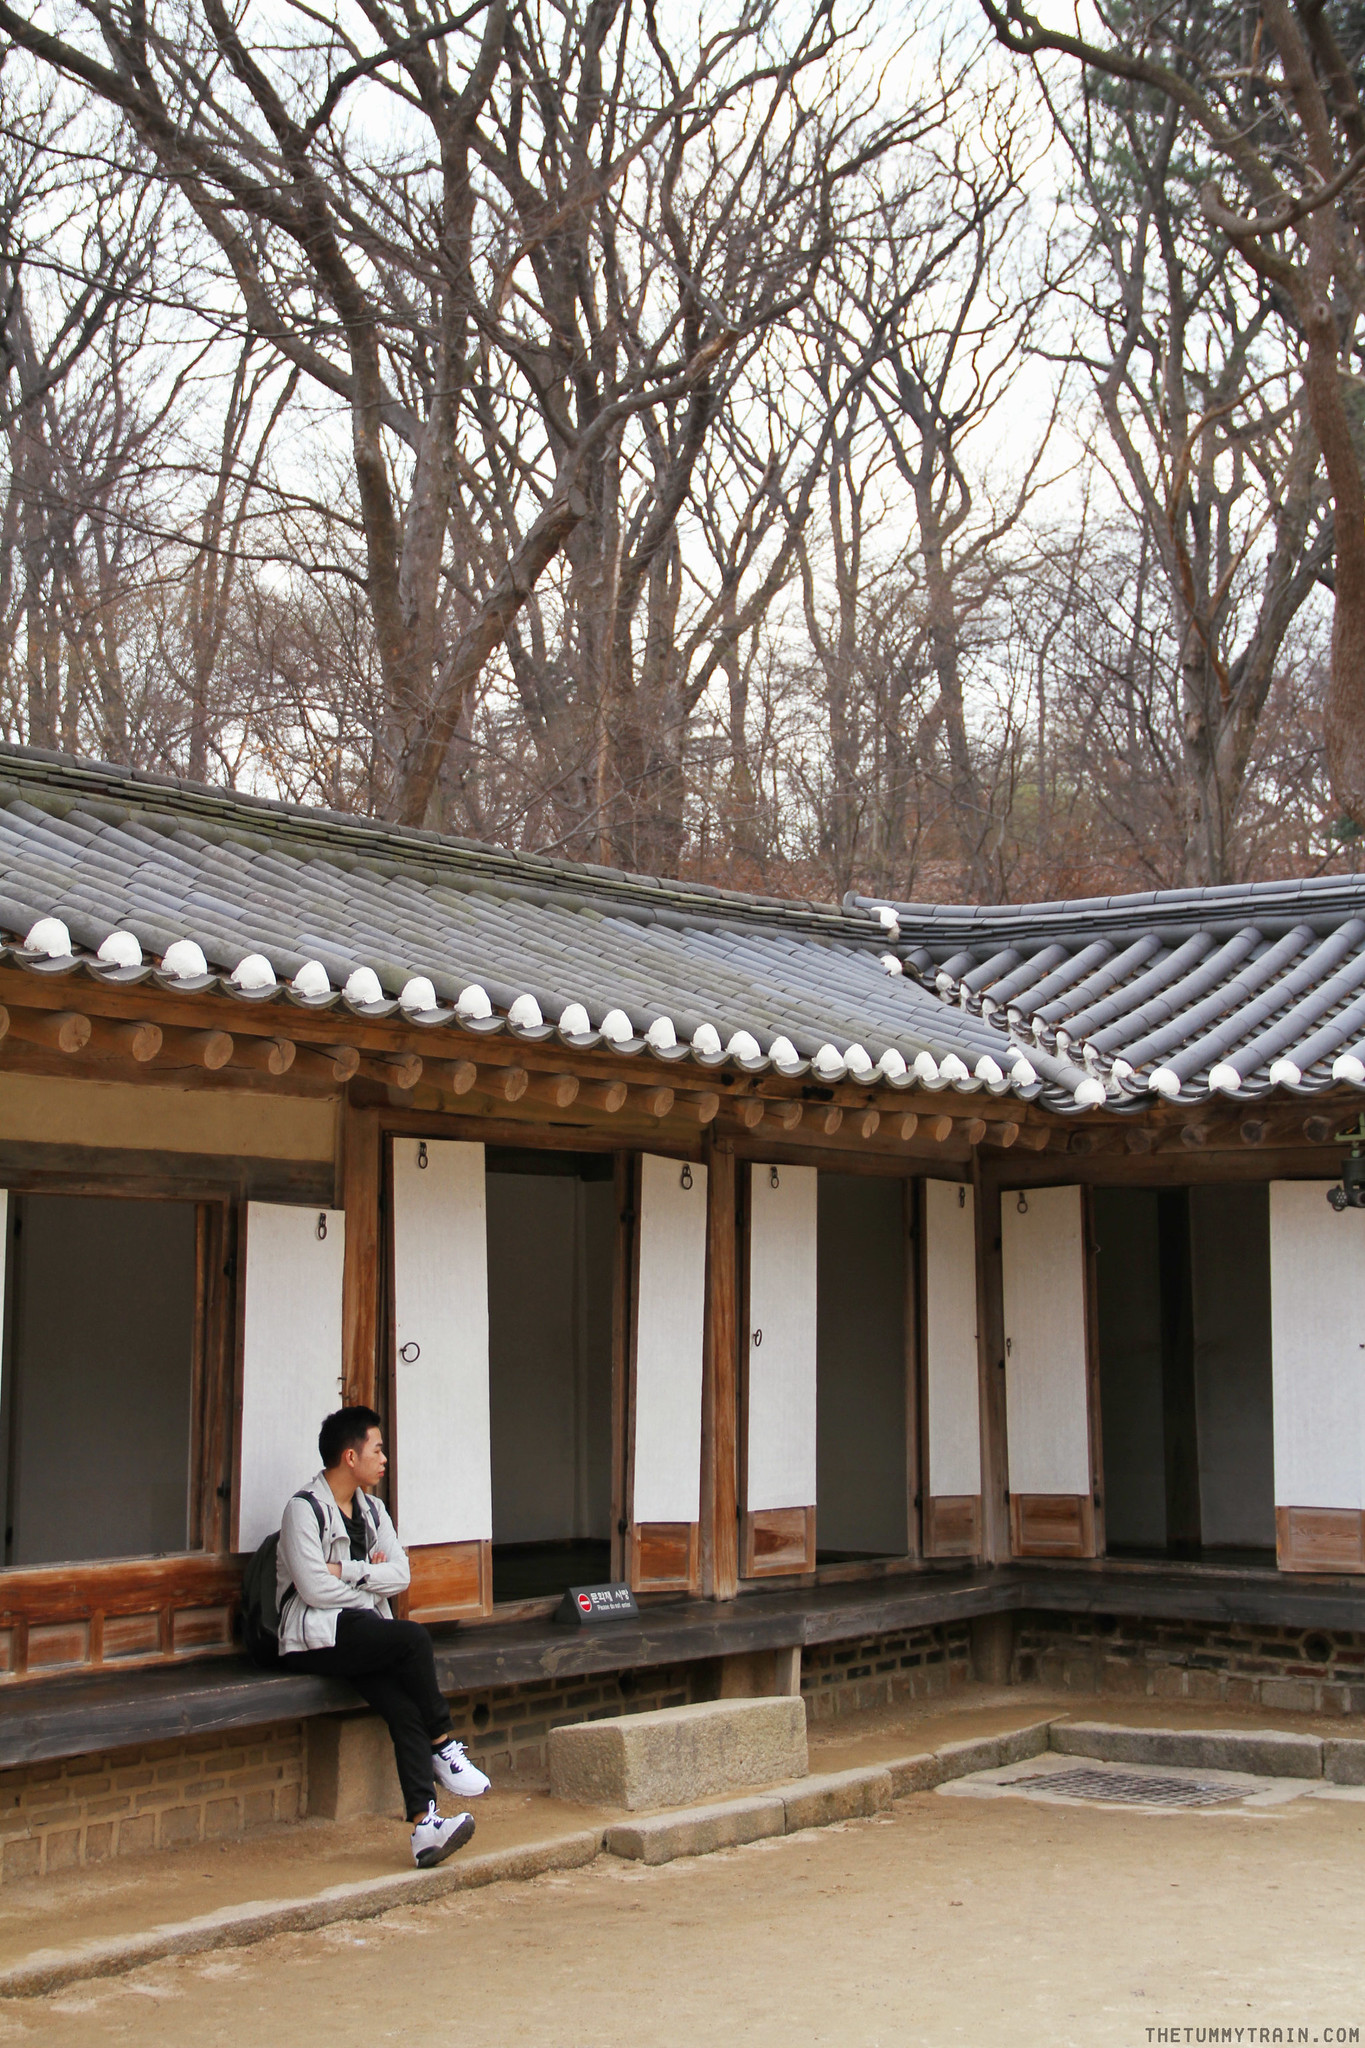 33530699085 d7d4150920 k - Seoul-ful Spring 2016: Greeting the first blooms at Changdeokgung Palace